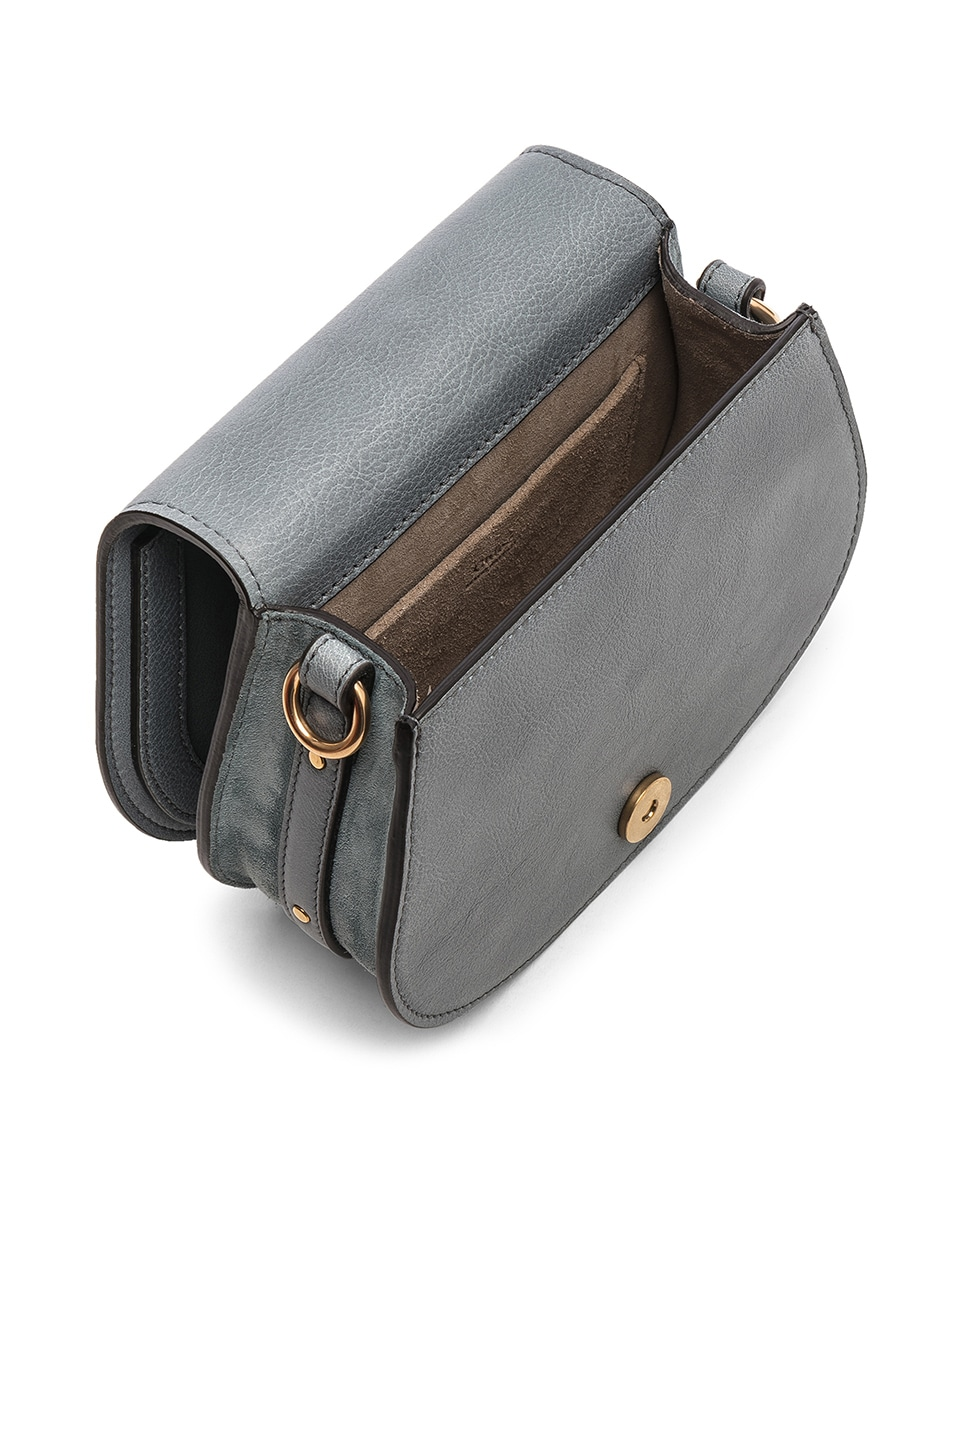 Image 5 of Chloe Small Nile Bracelet Bag Calfskin & Suede in Cloudy Blue